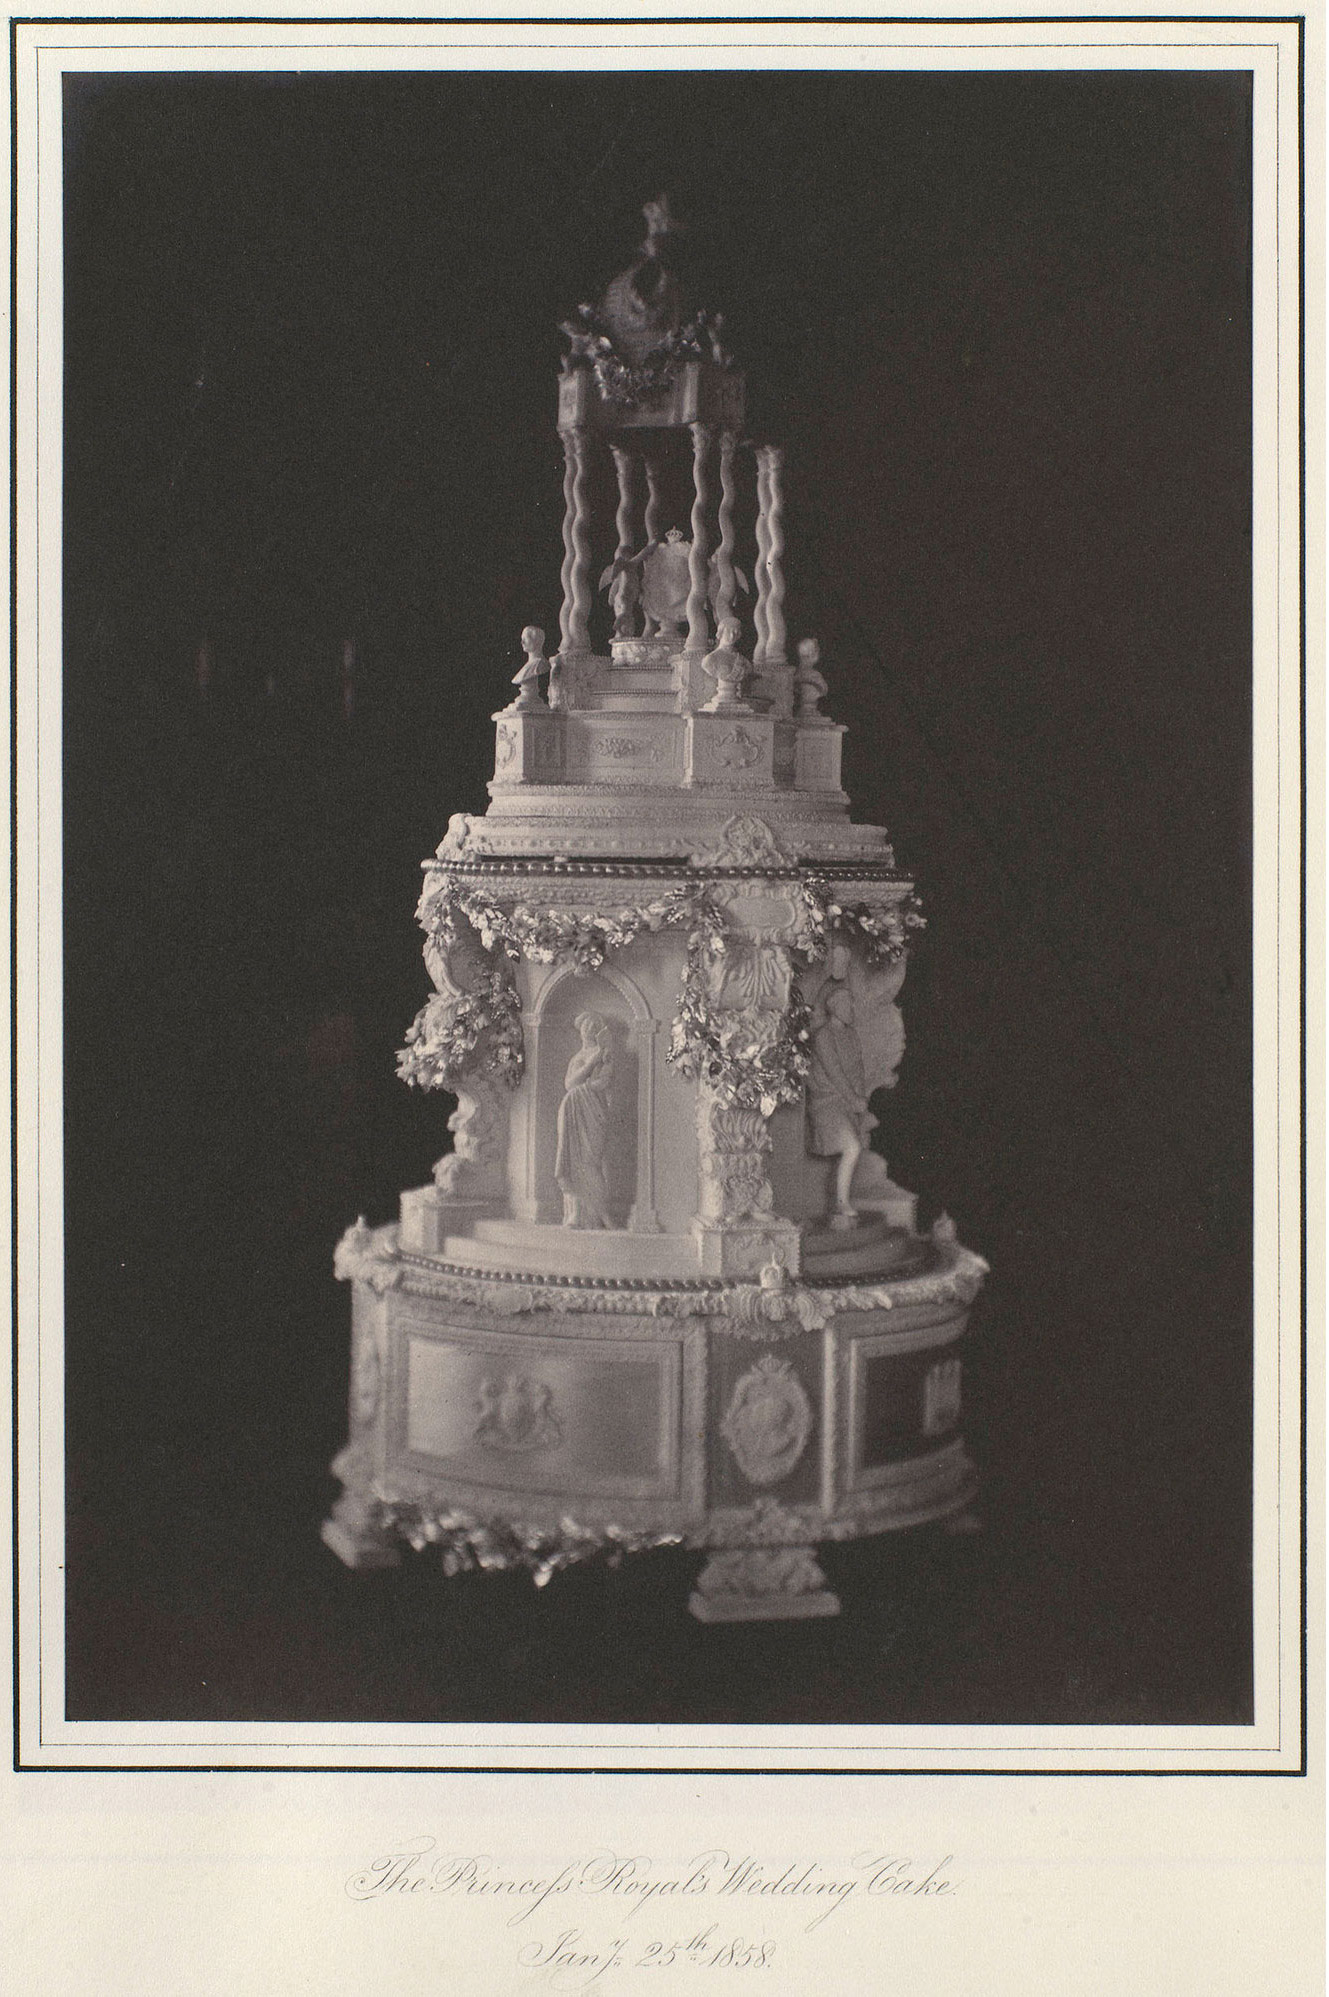 Weddingcake Queen Victoria, Royal Collection Trust